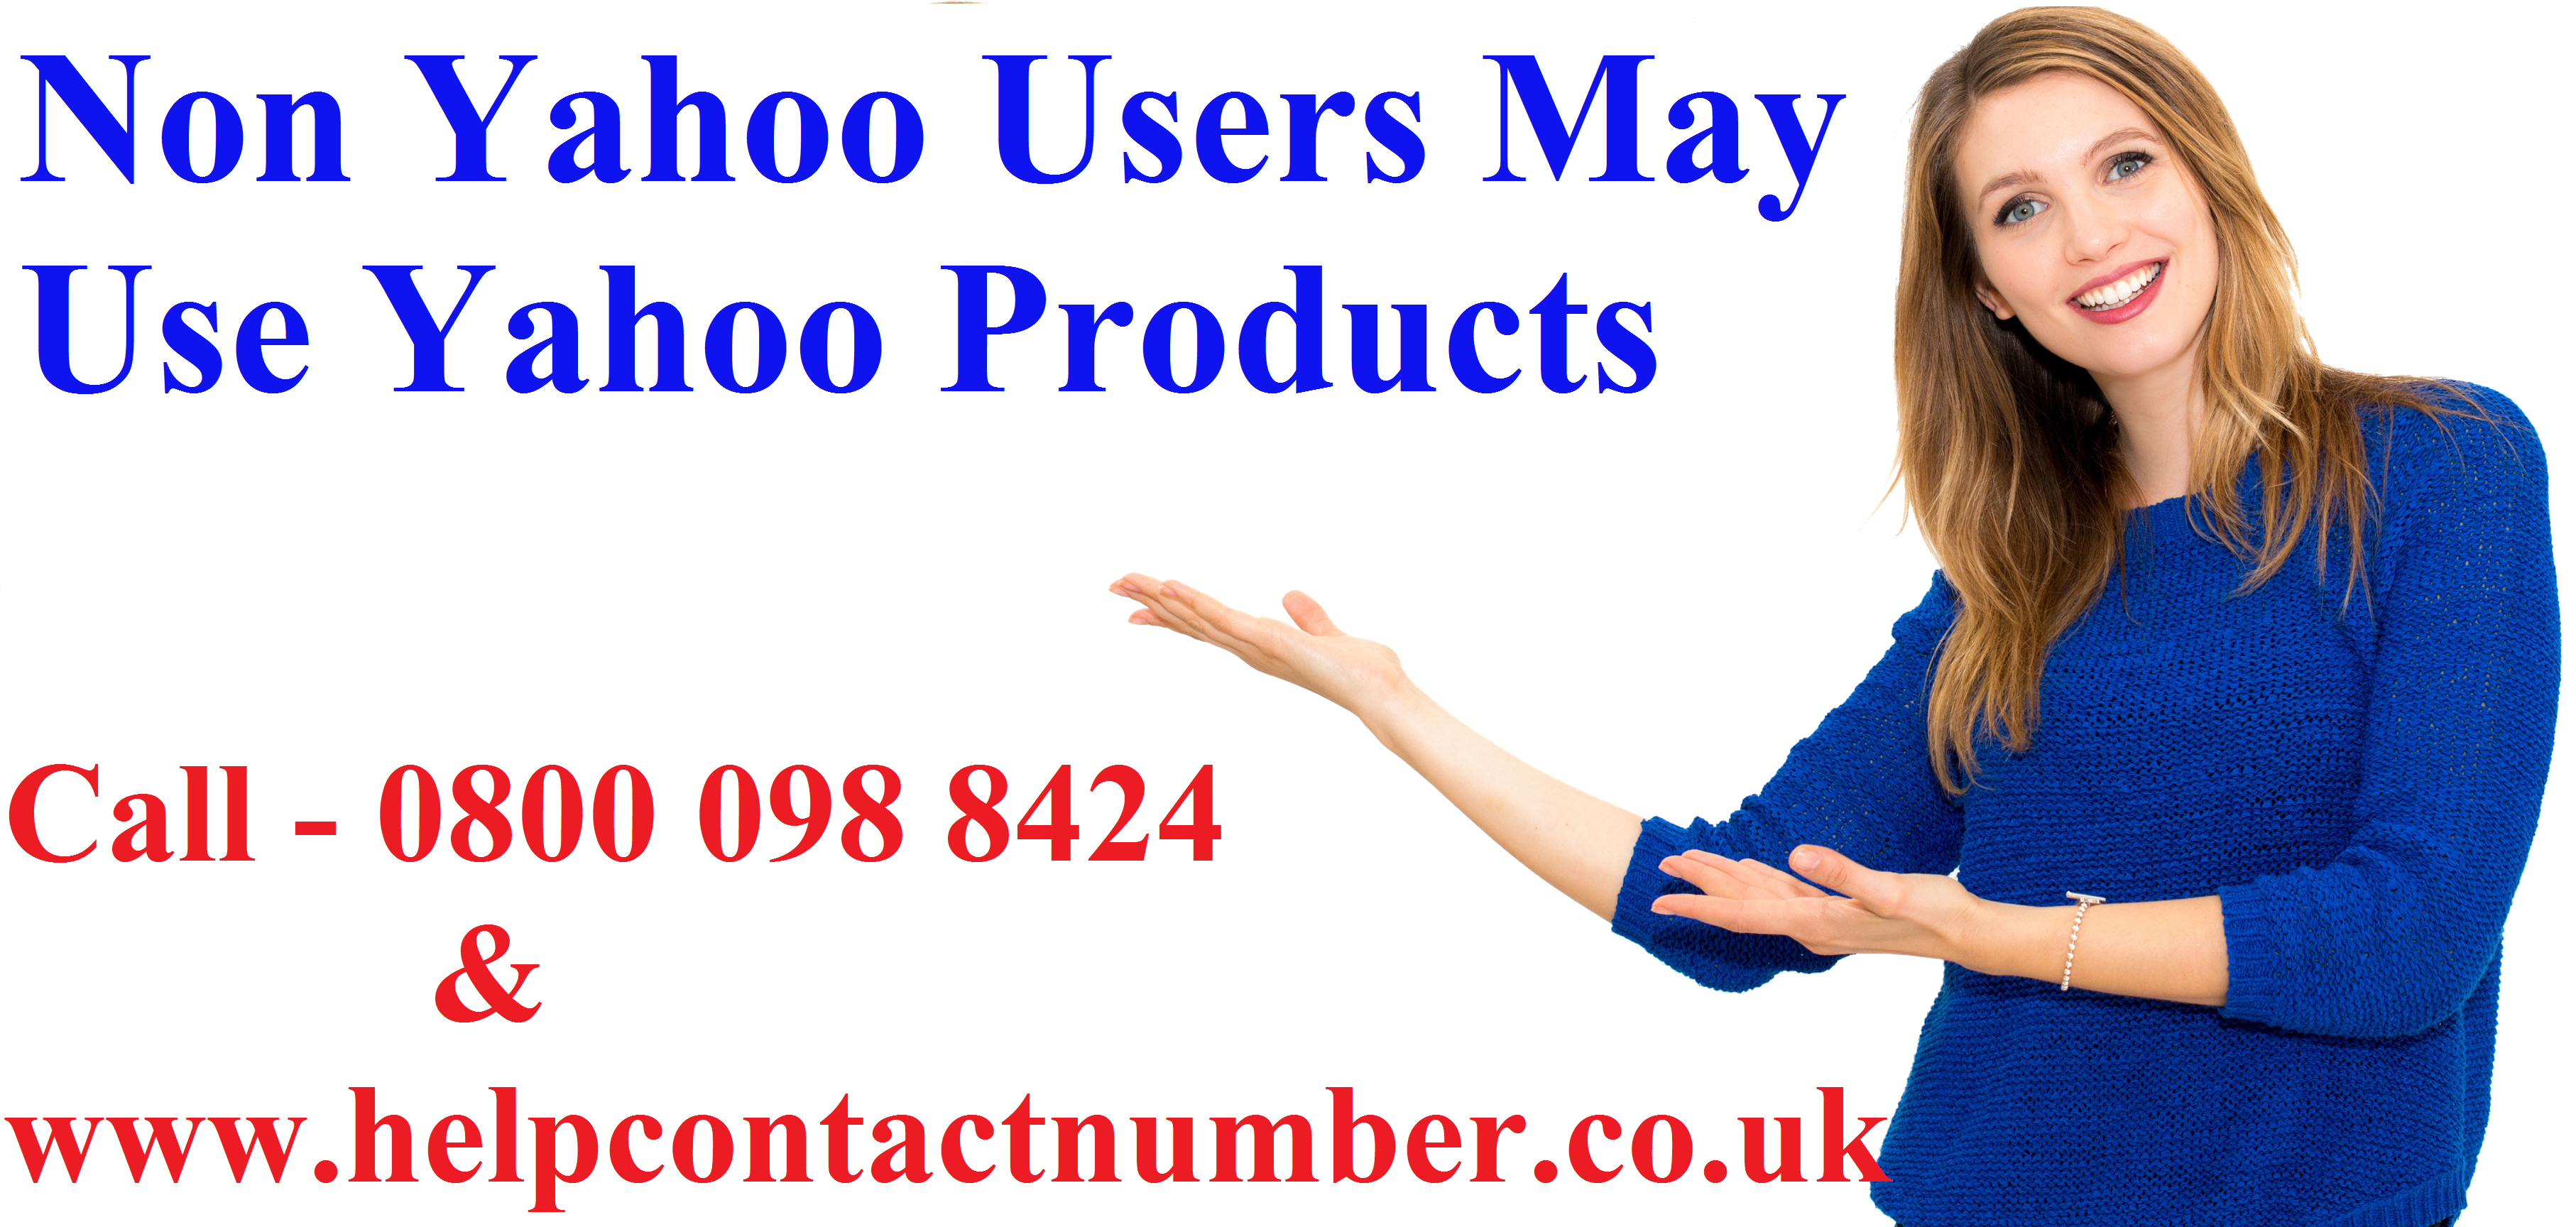 Non Yahoo Users May Use Yahoo Products - Contact Help Number